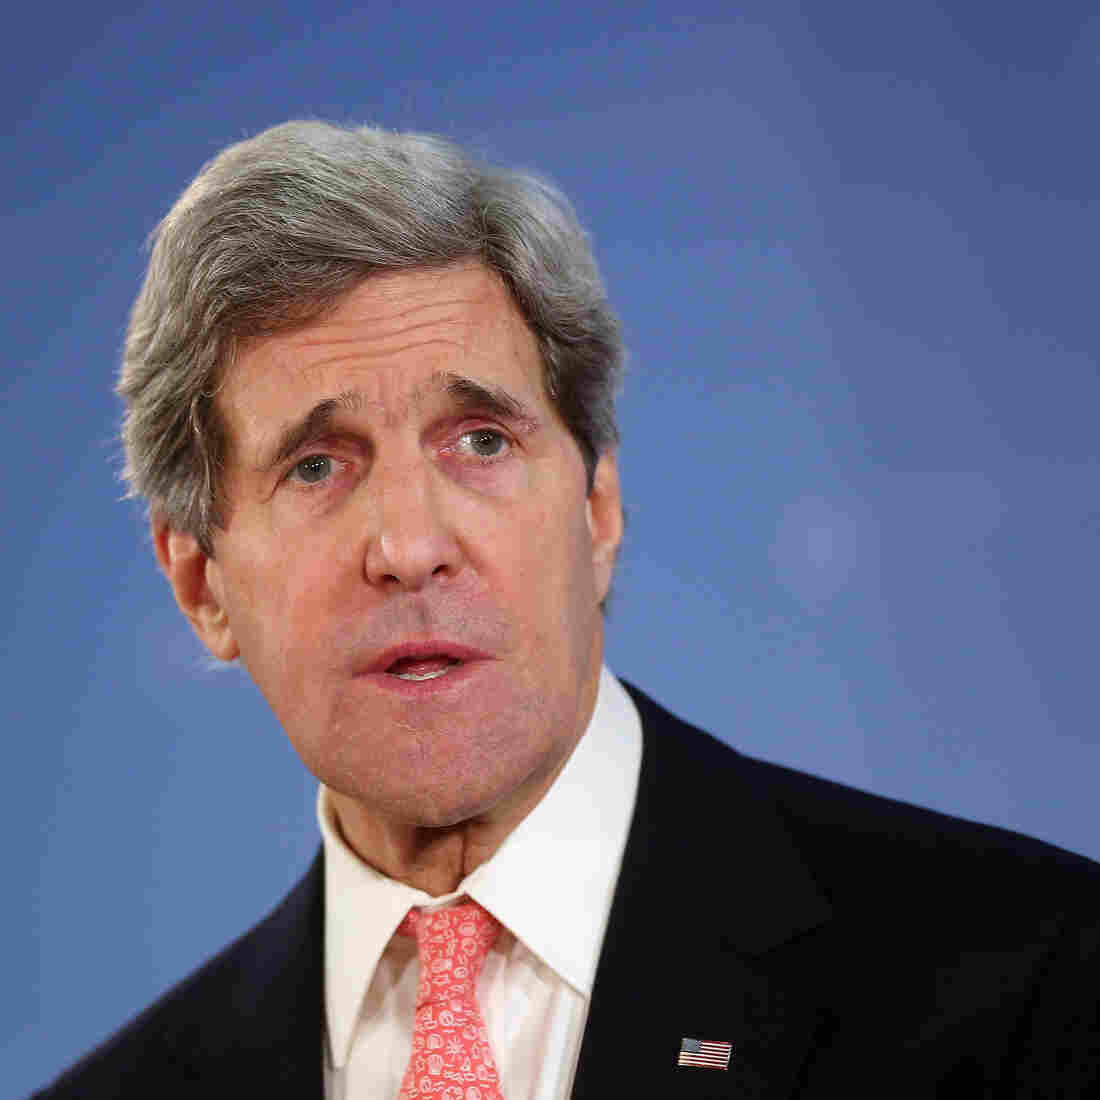 John Kerry To German Students: Americans Have 'Right To Be Stupid'